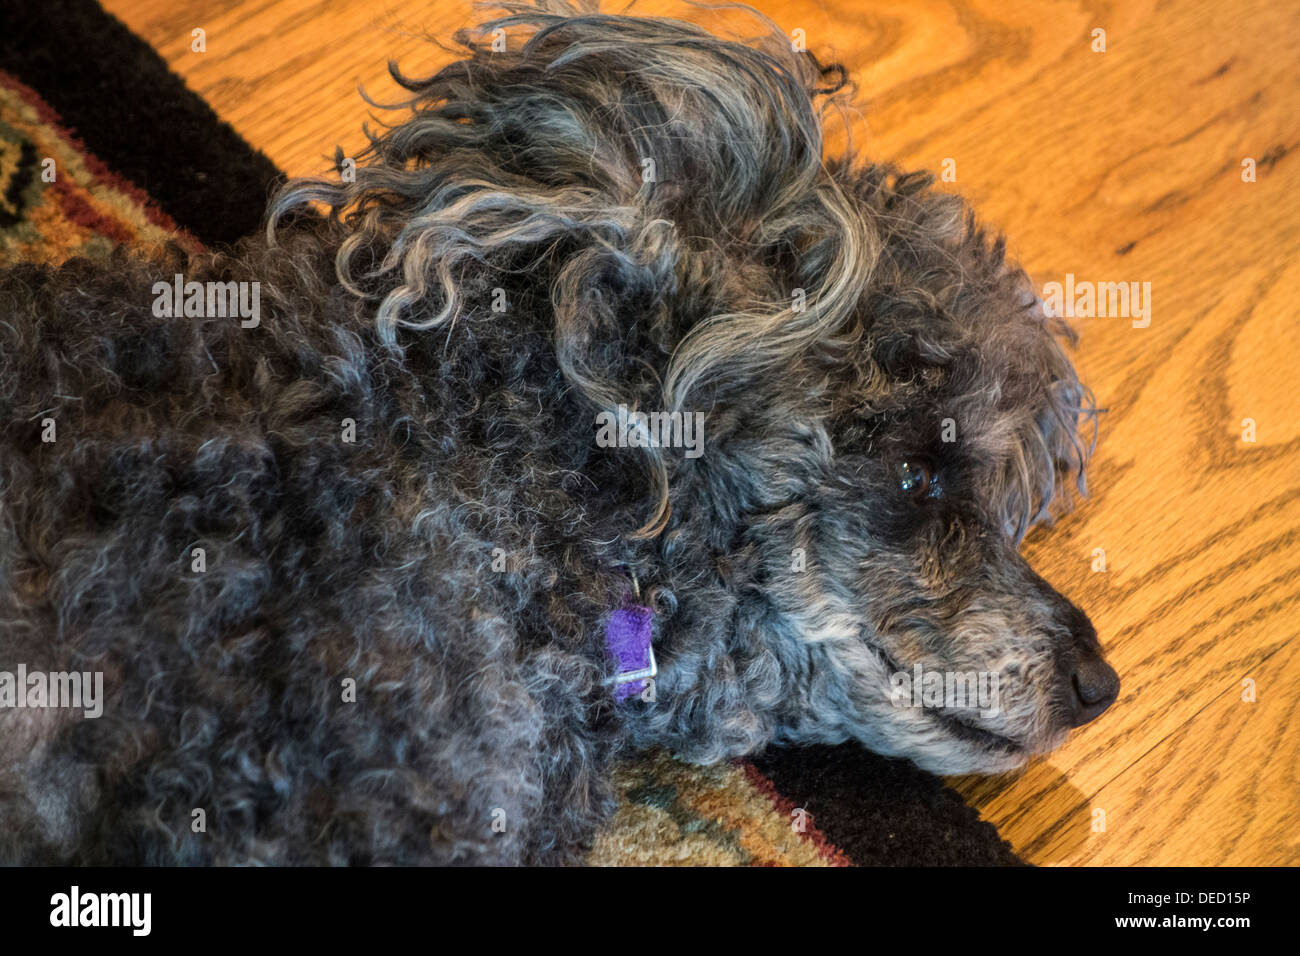 An old dog, a once black female poodle, nearing the end of her life, takes a nap on the floor. - Stock Image